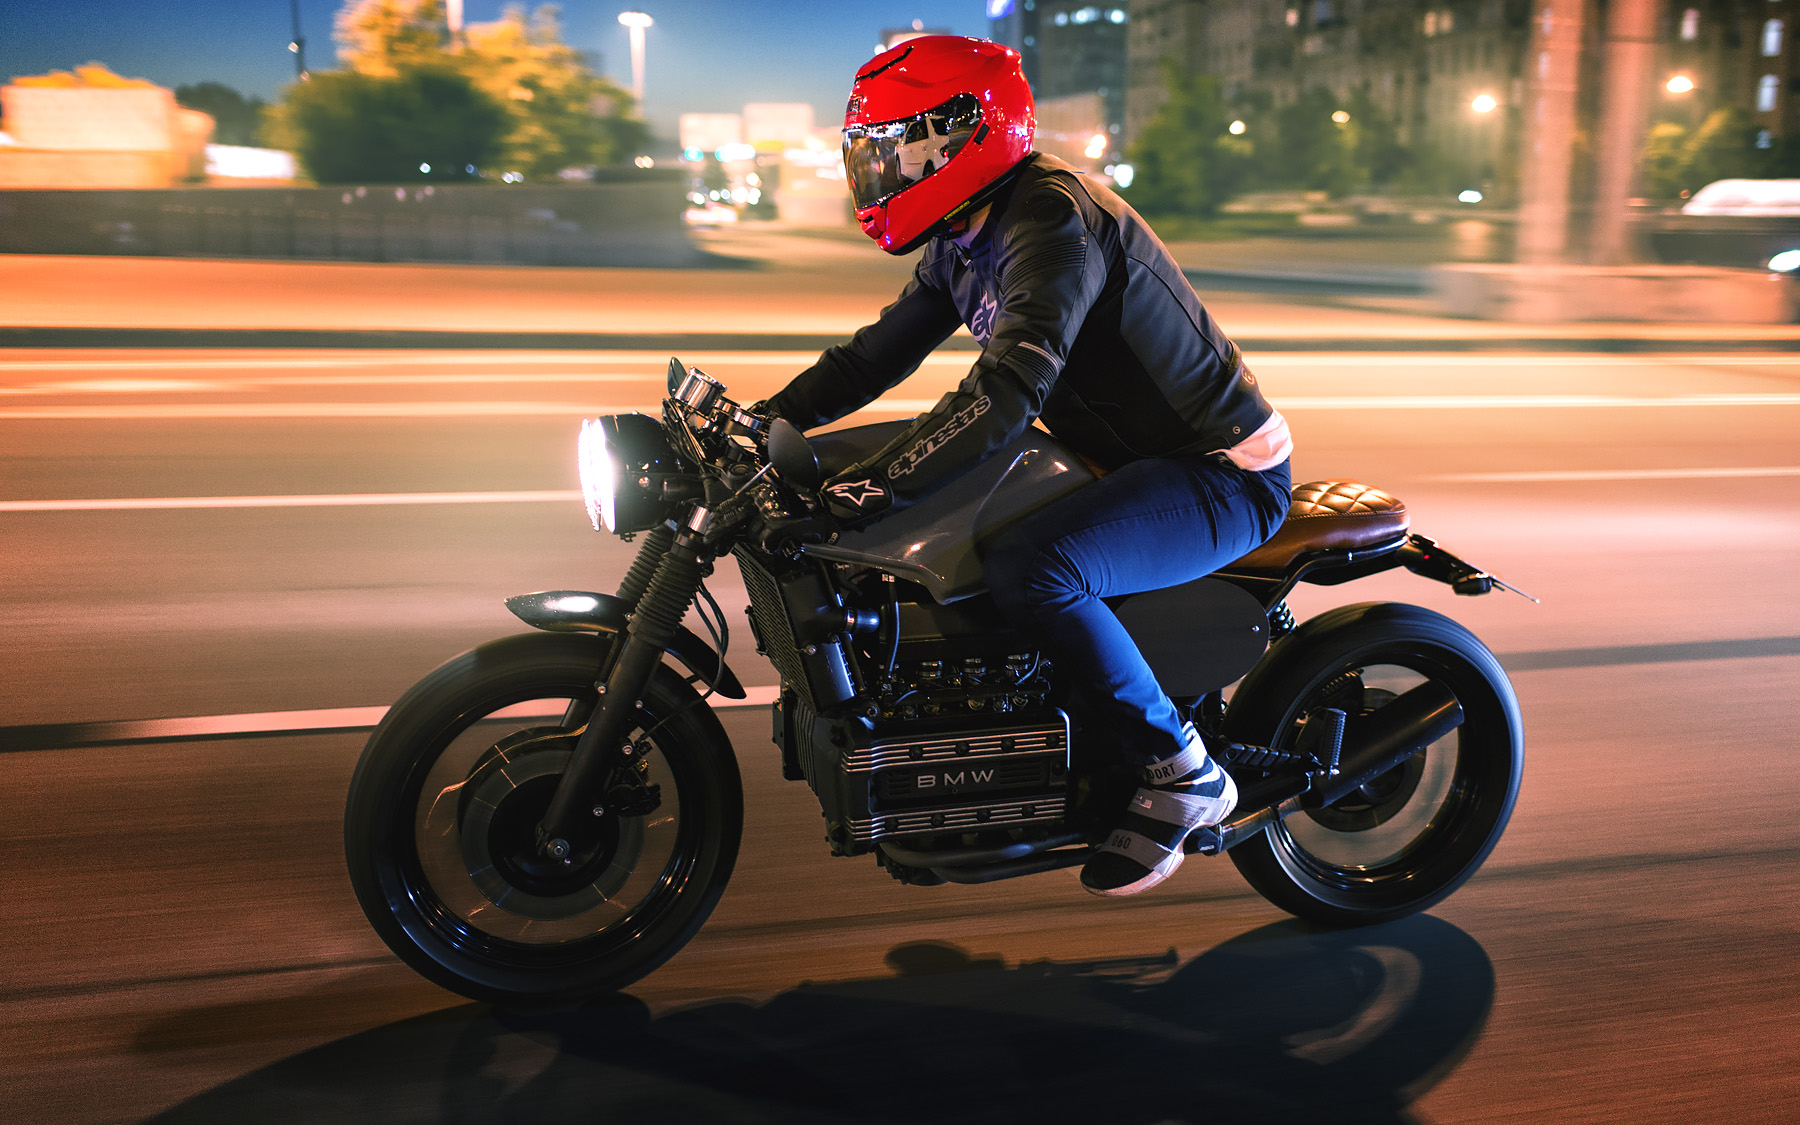 Bmw K100 Rt 1988 Caferacer Night Brick Or During 30 Minutes Shoots